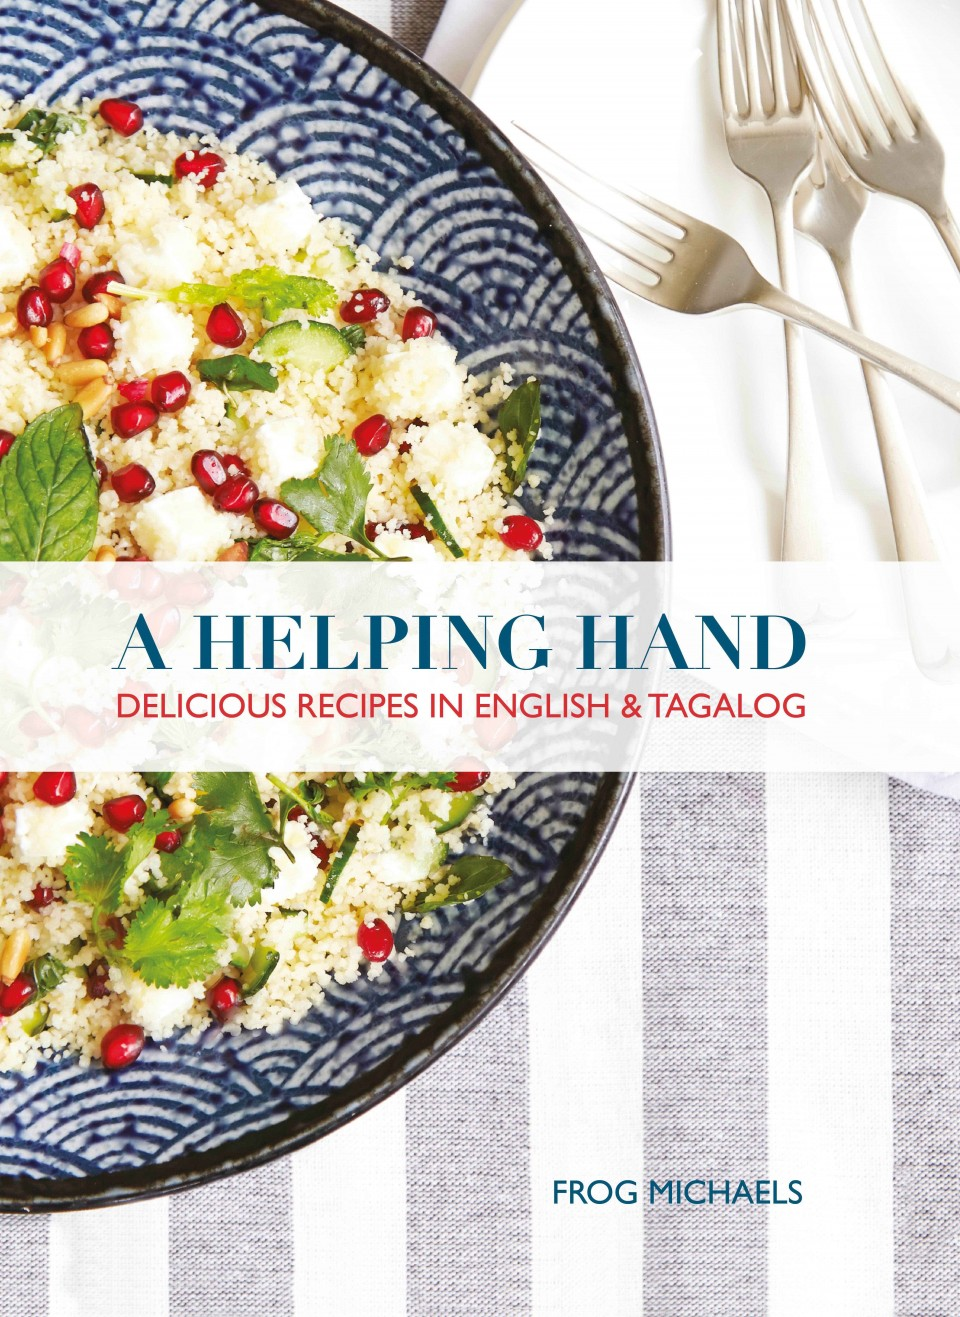 My book a helping hand delicious recipes in english tagalog by a helping hand delicious recipes in english tagalog by frog michaels changmoh the musings of an english girl angmoh charboh in singapore on style forumfinder Choice Image